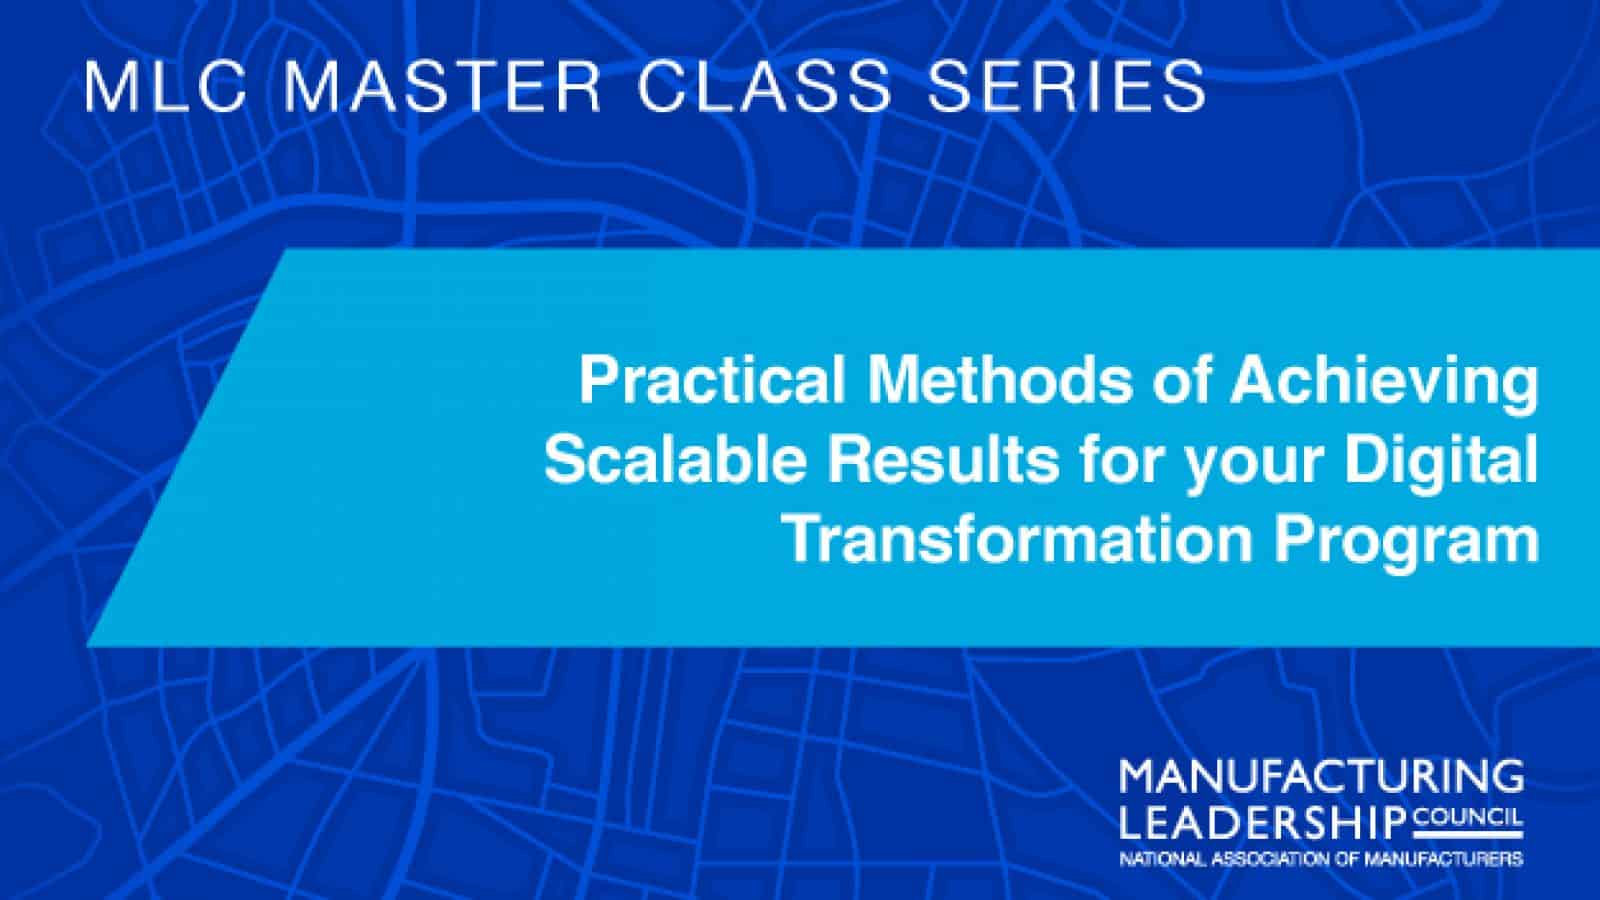 Practical Methods of Achieving Scalable Results for your Digital Transformation Program